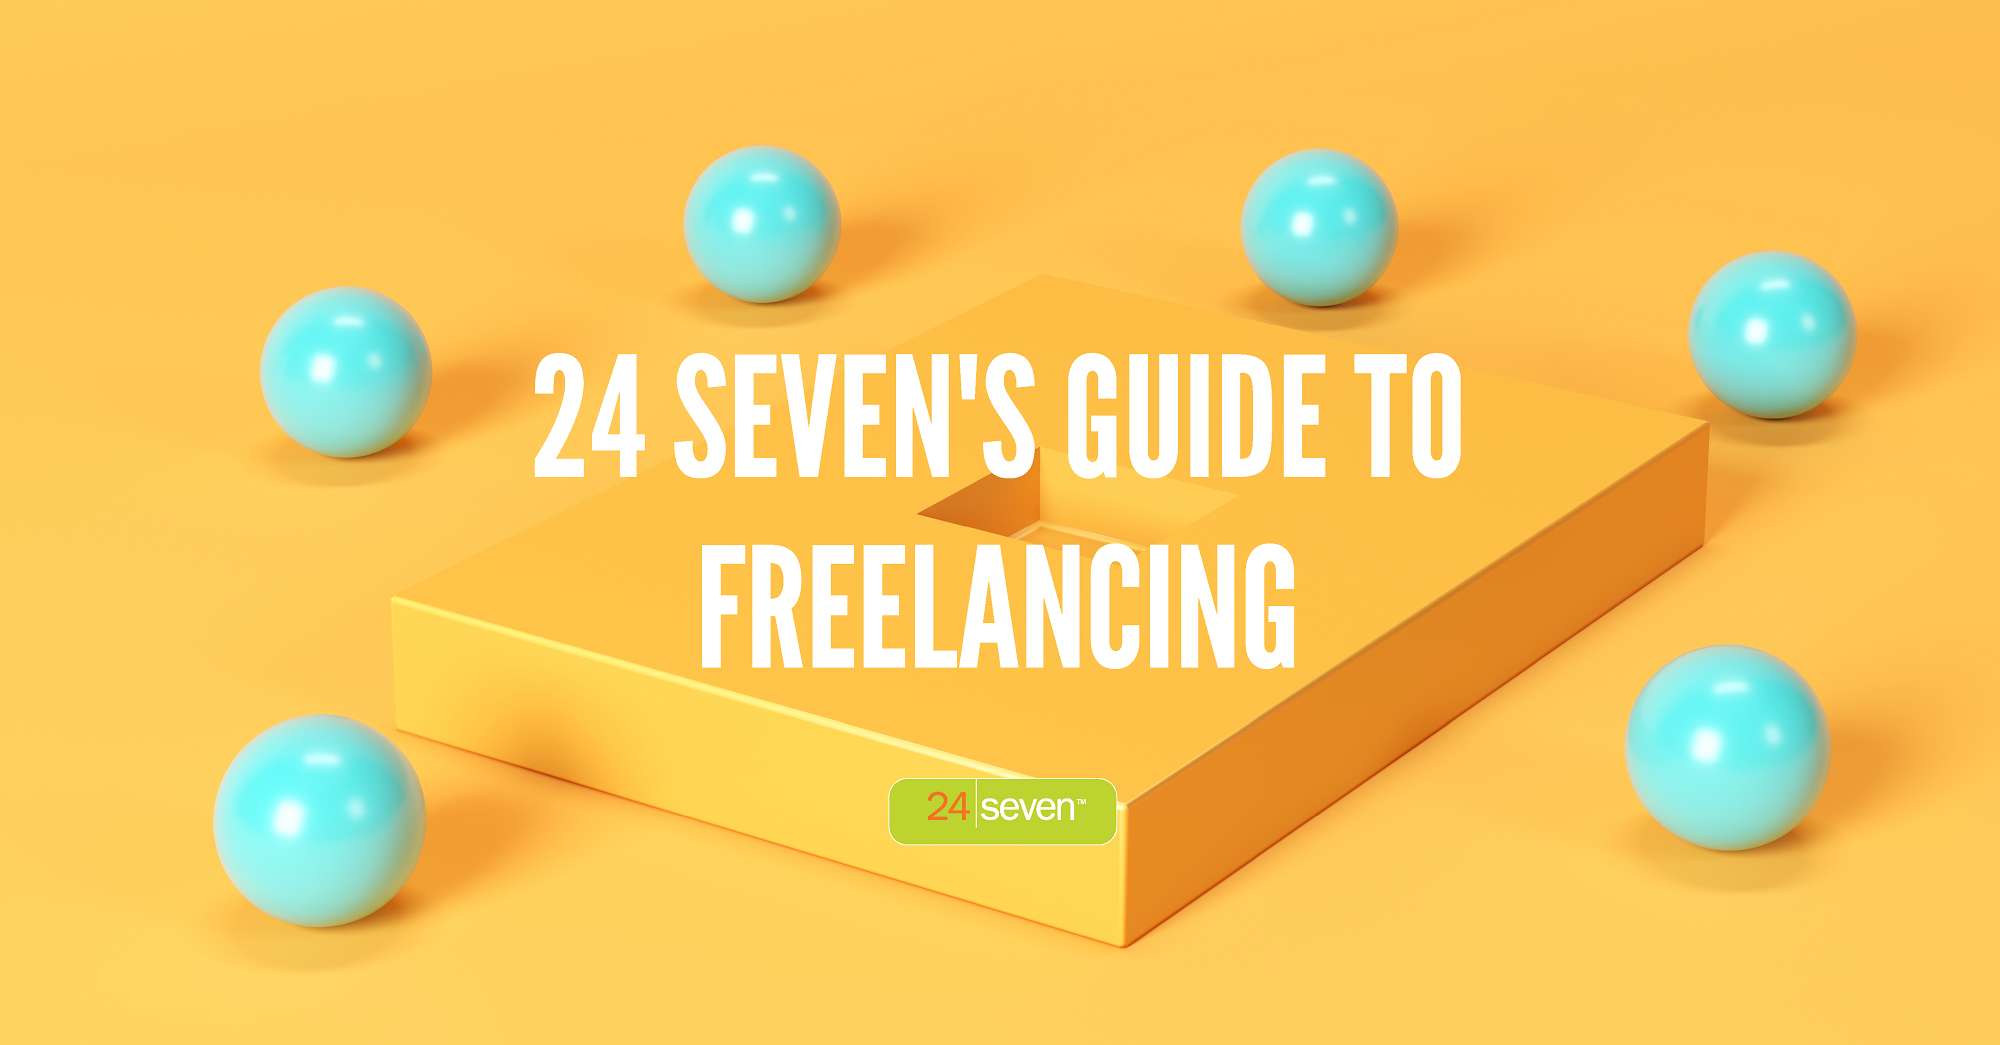 24 Sevens Guide To Freelancing